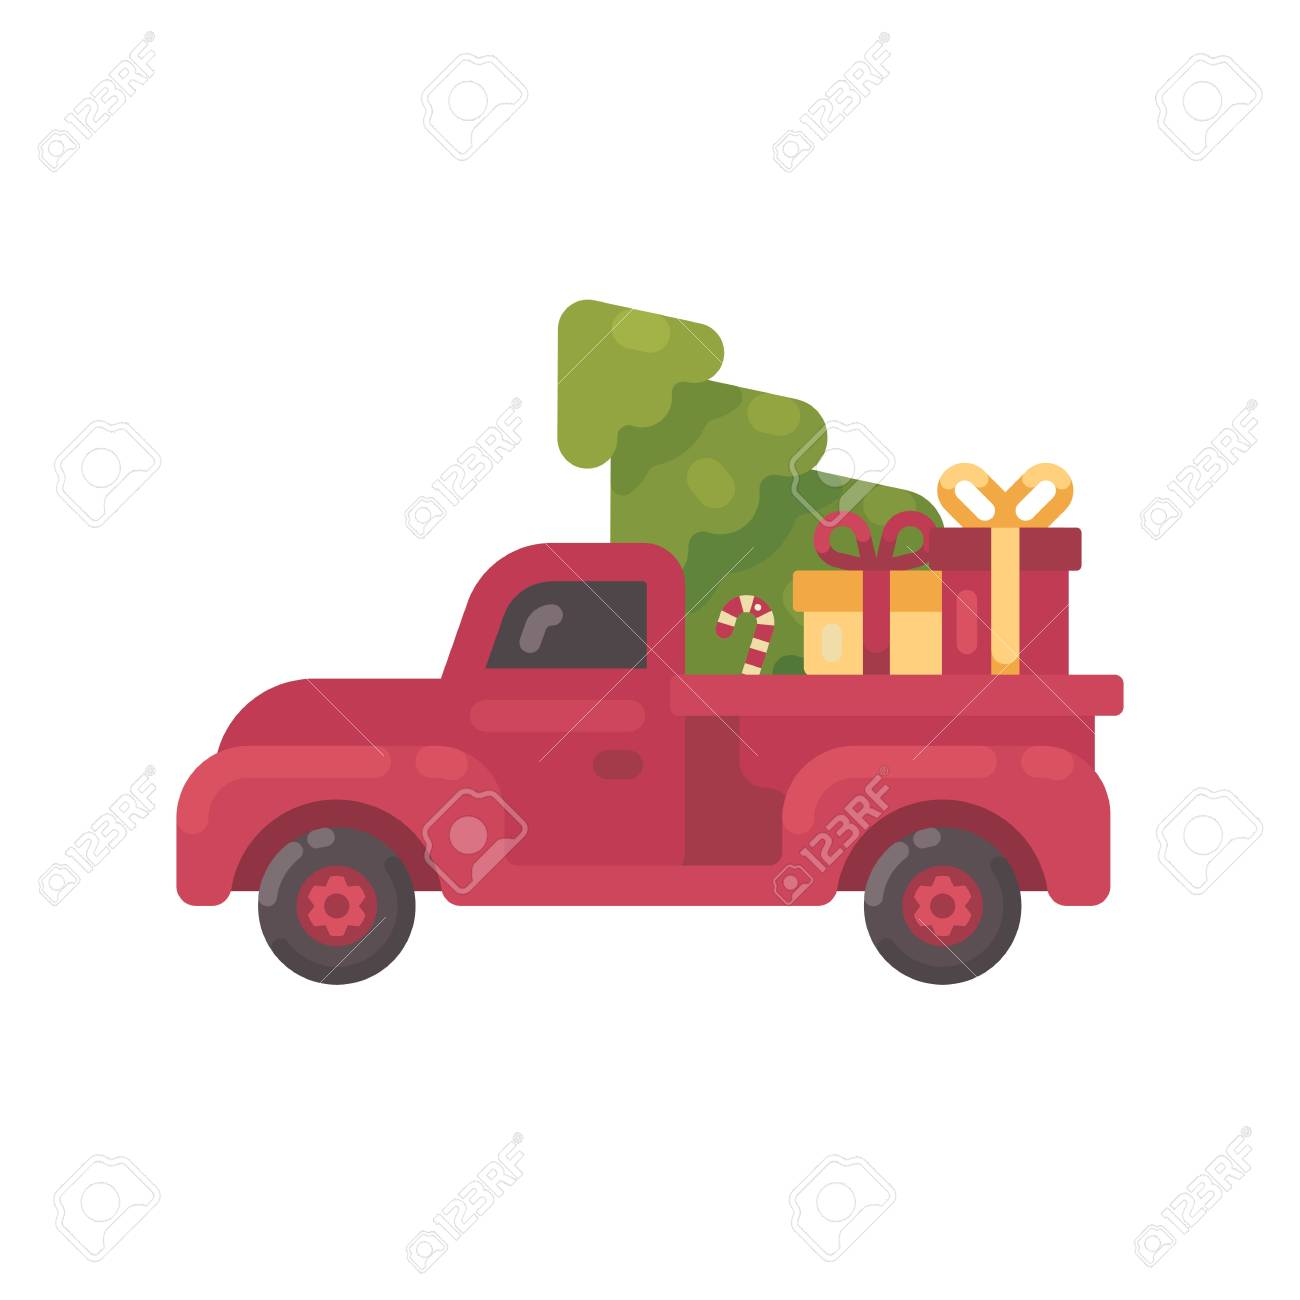 Old Red Truck With Christmas Tree And Presents Royalty Free Cliparts Vectors And Stock Illustration Image 90337979